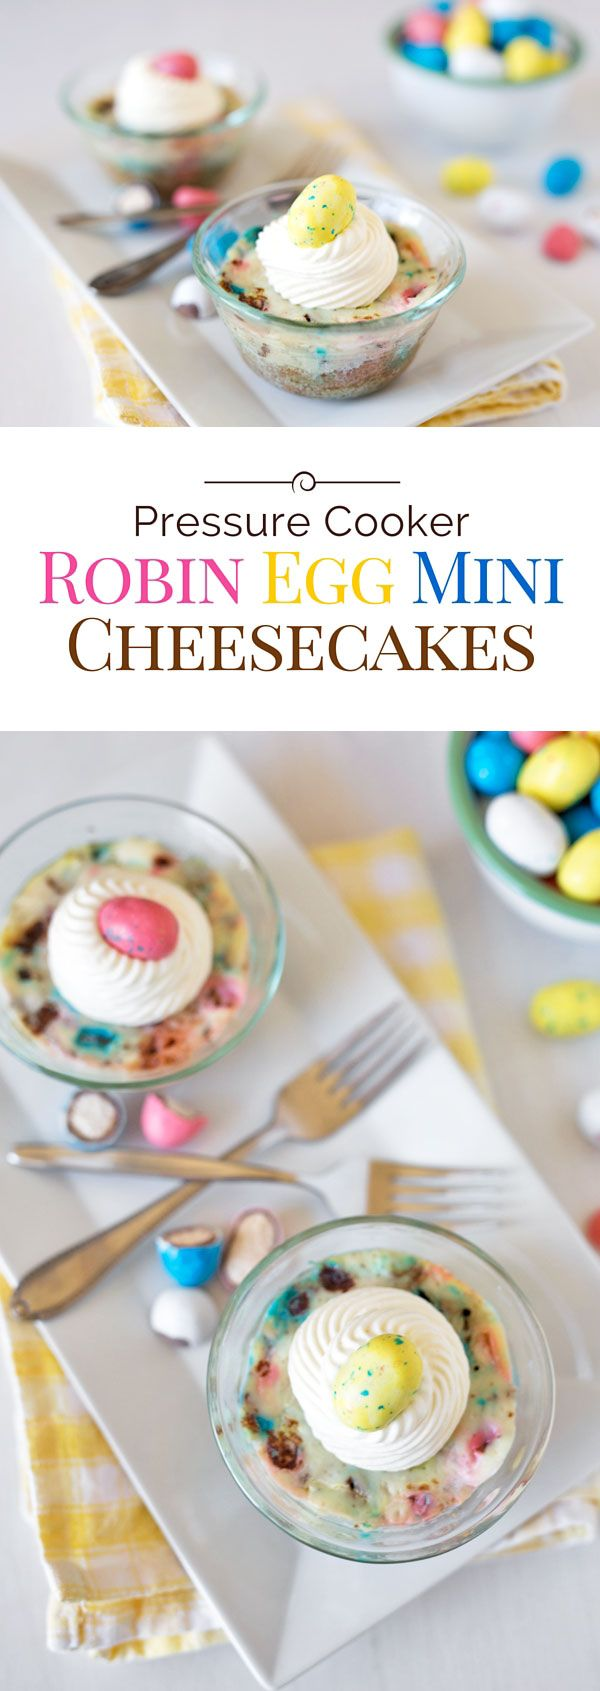 525 best holiday creative easter ideas images on pinterest these pressure cooker robin egg mini cheesecakes are a rich creamy new york style cheesecake negle Gallery